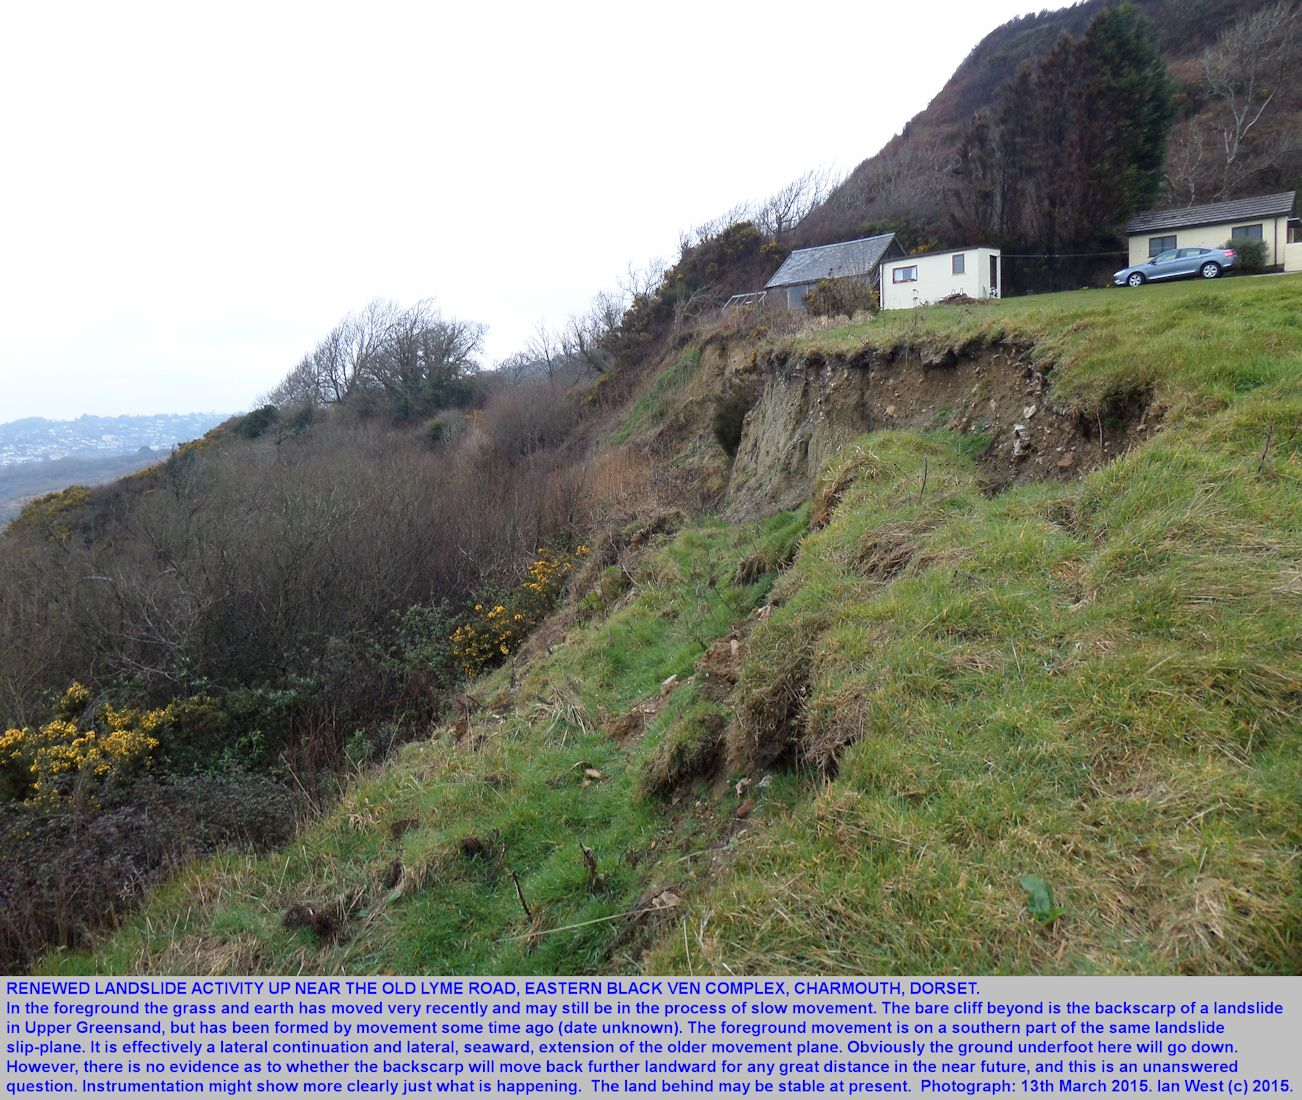 The backscarp of an older landslide near the Old Lyme Road, Black Ven complex, Charmouth, Dorset, with a newer extension to the backscarp in the foreground